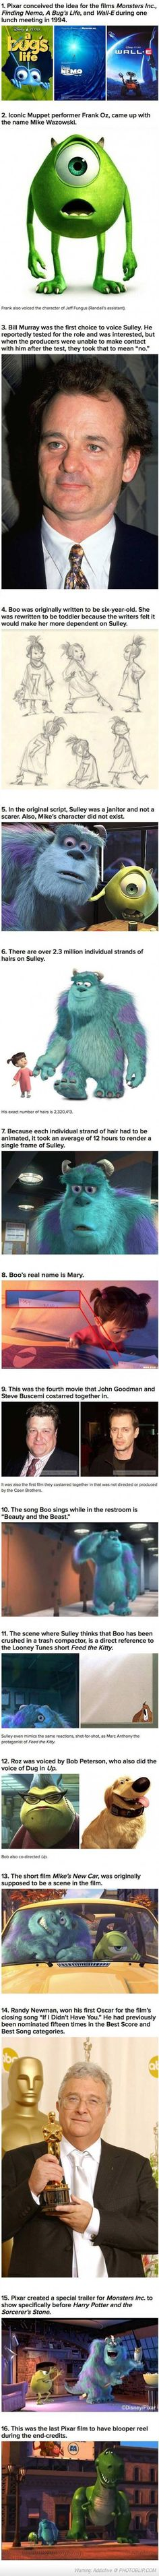 16 Things You Might Not Know About Monsters Inc